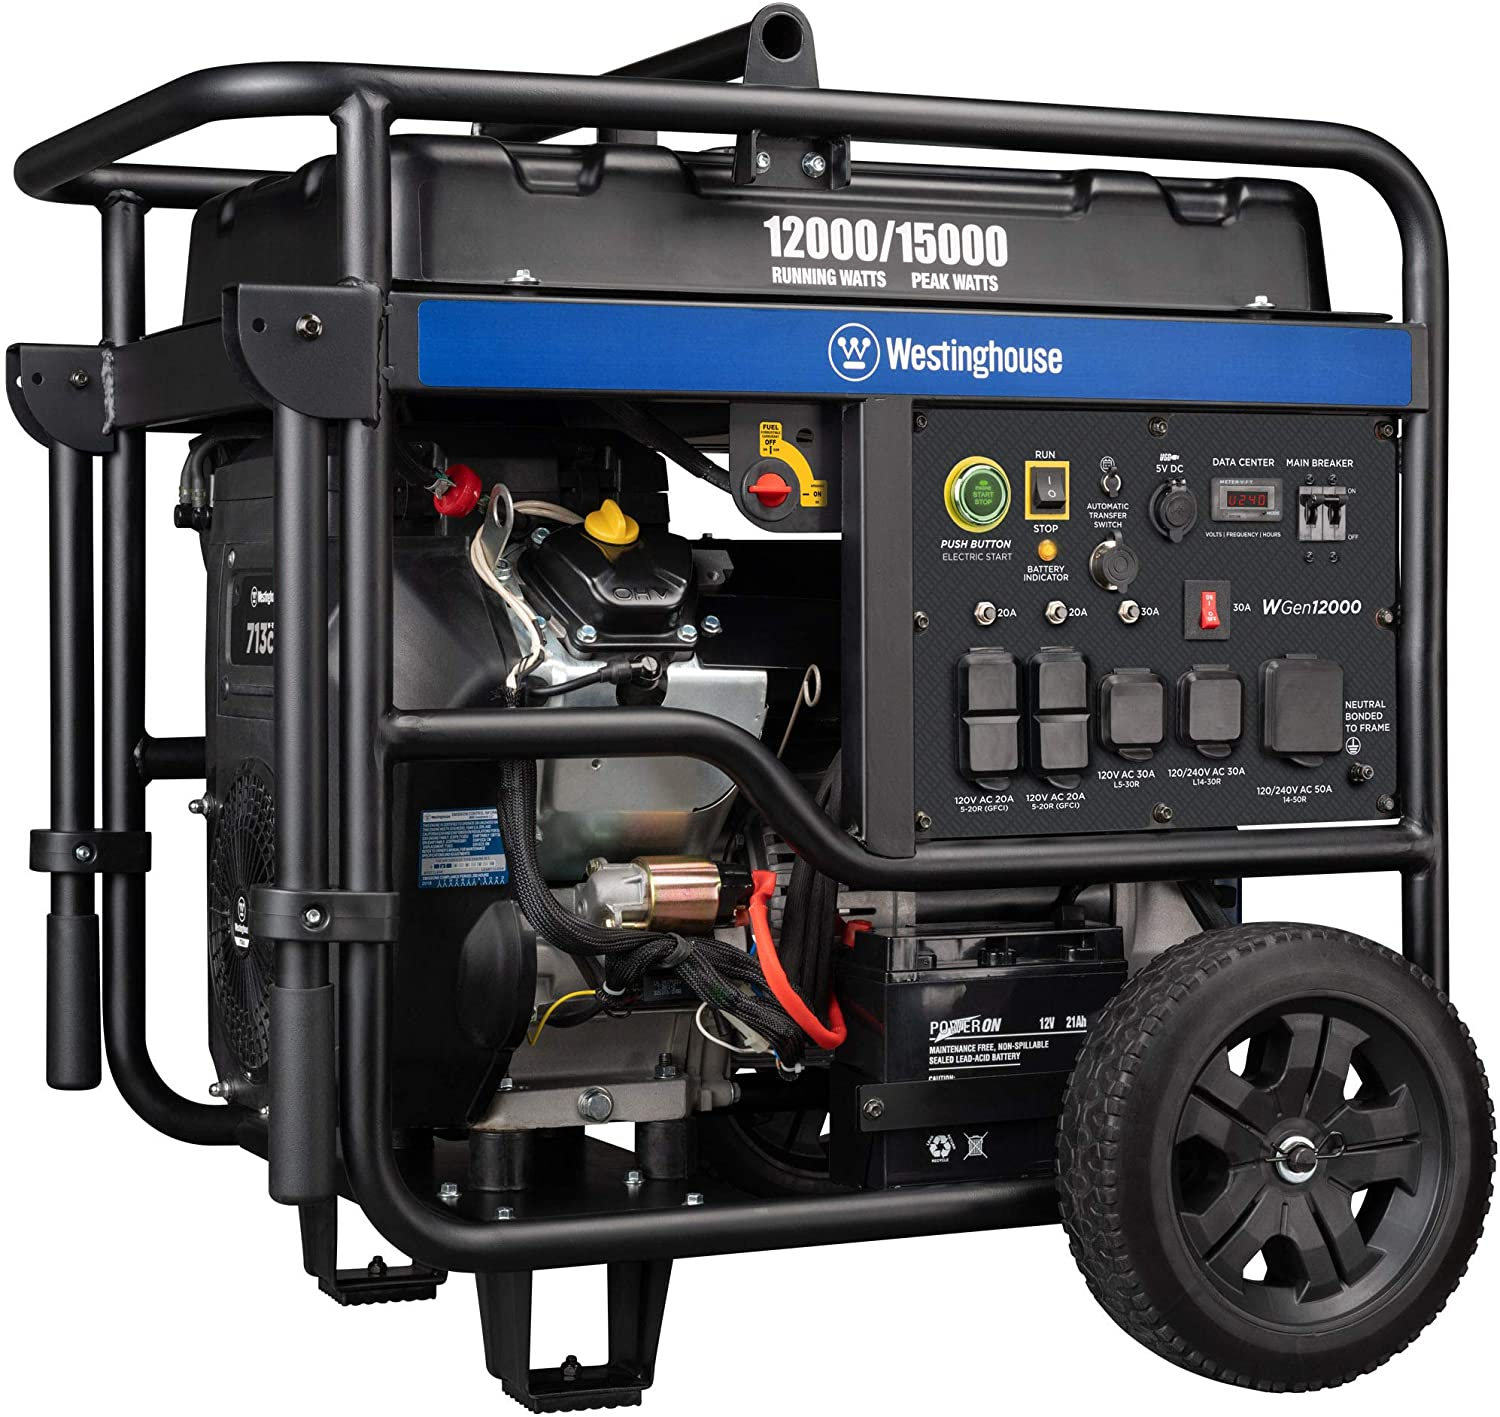 Westinghouse Outdoor Power Equipment Portab Ultra WGen12000 Max In a popularity 50% OFF Duty